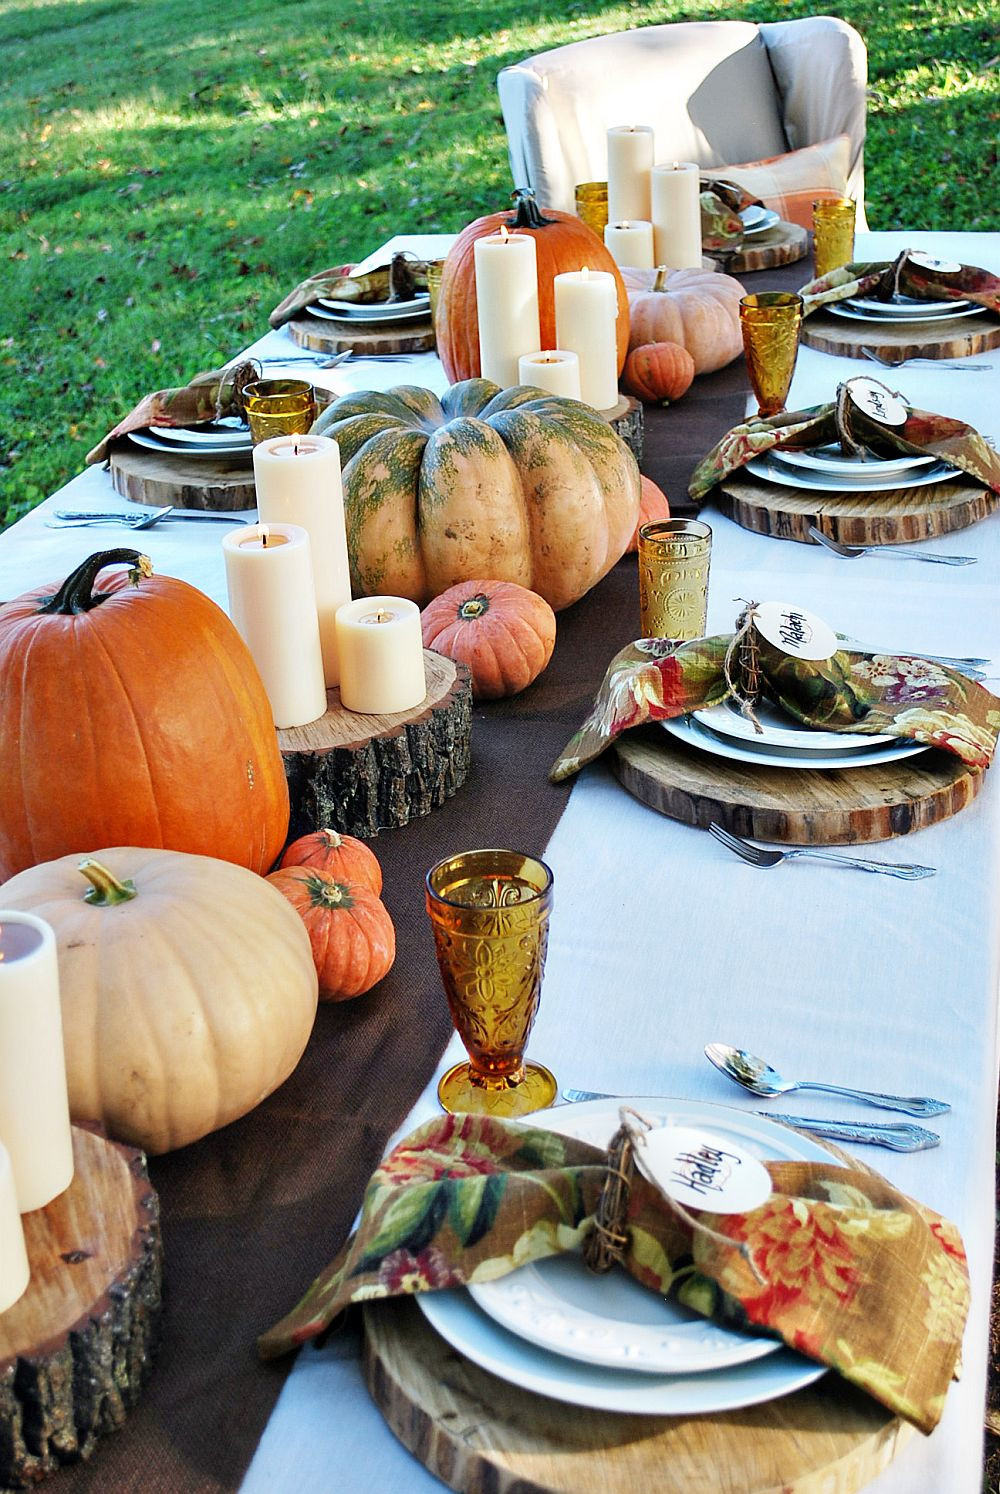 Thanksgiving Dinner Decorations  15 Outdoor Thanksgiving Table Settings for Dining Alfresco